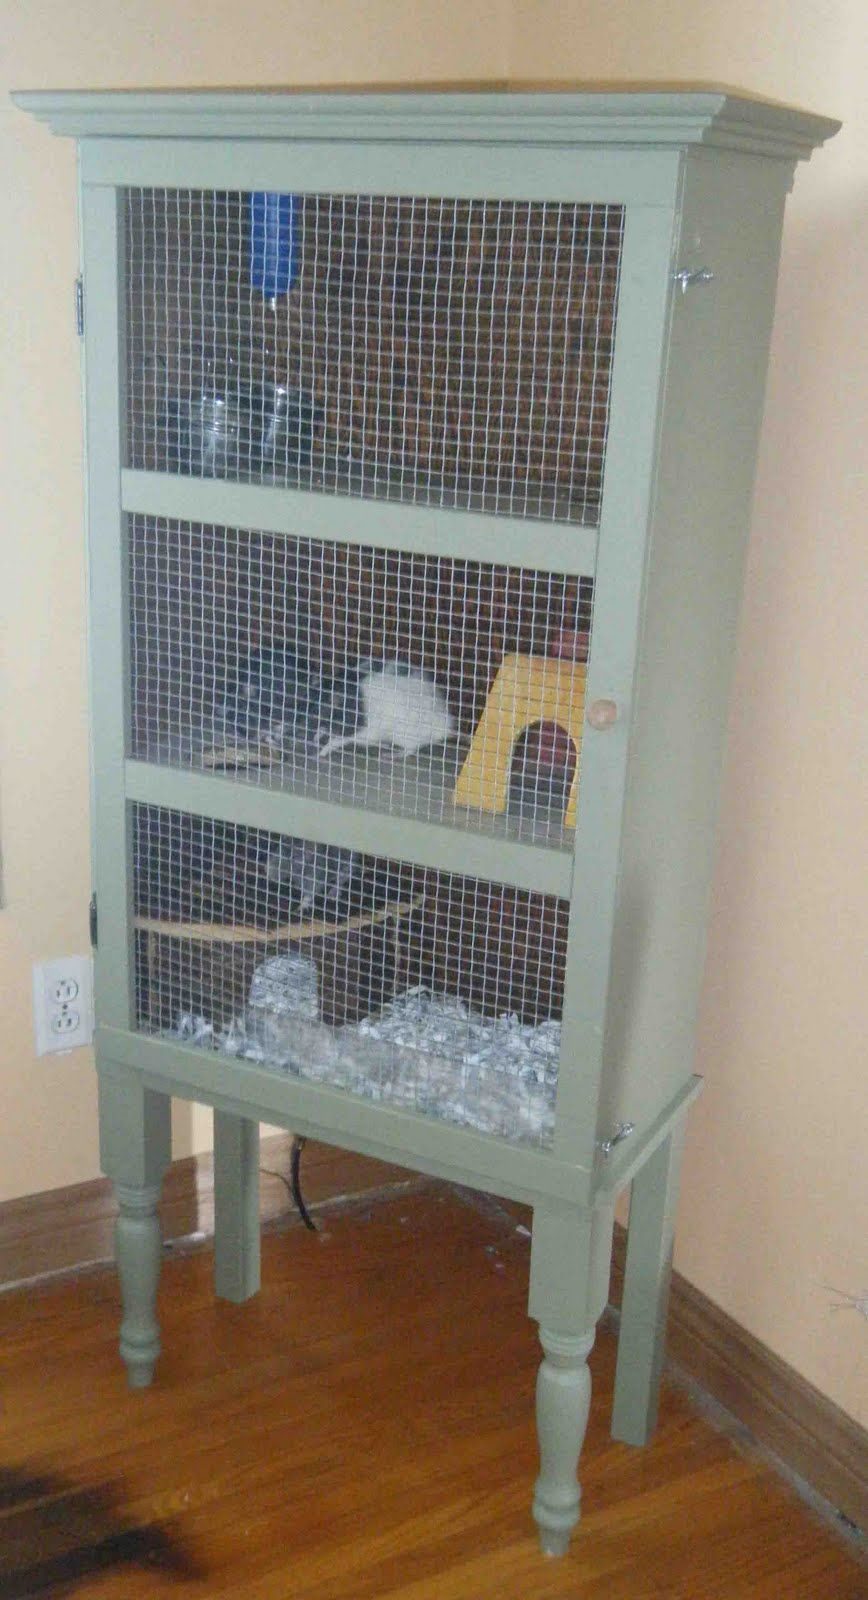 I Told The Story Of Rat Cage That Spiraled Out Control In An Earlier Post Ive Finally Got Photos Together To Show How It Was C